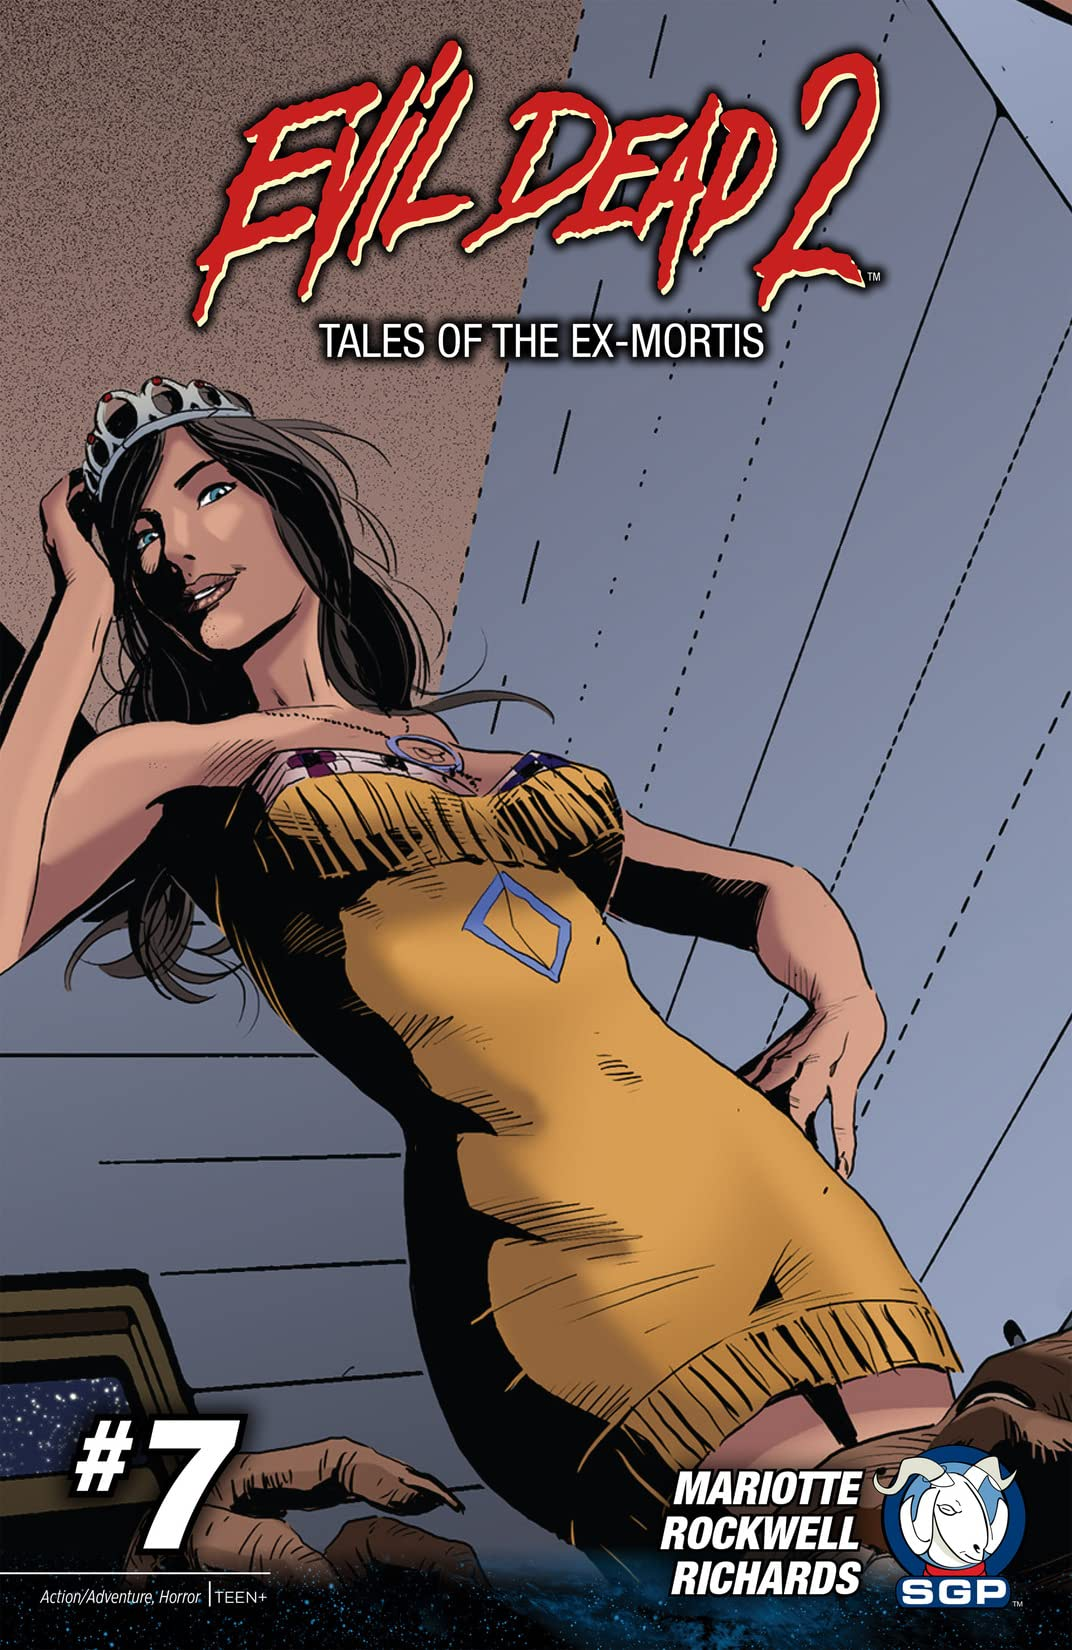 Evil Dead 2: Tales of the Ex-Mortis #7